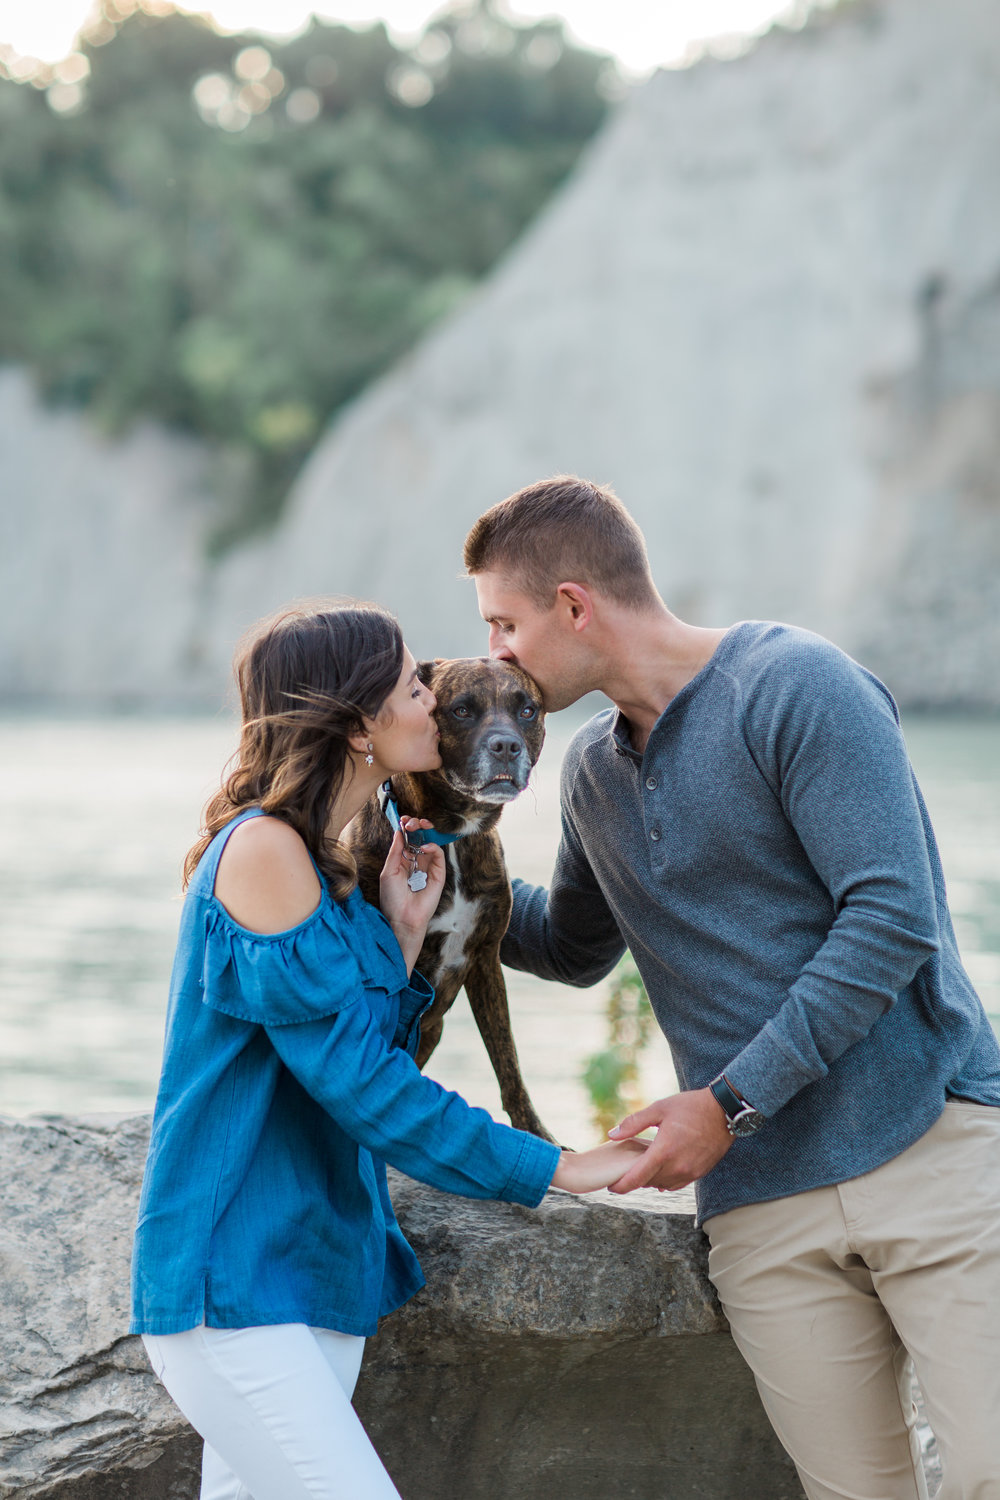 Danielle-Giroux-Amir-Golbazi-Genua-Family-Photography-Scarborough-Bluffs-0172.jpg